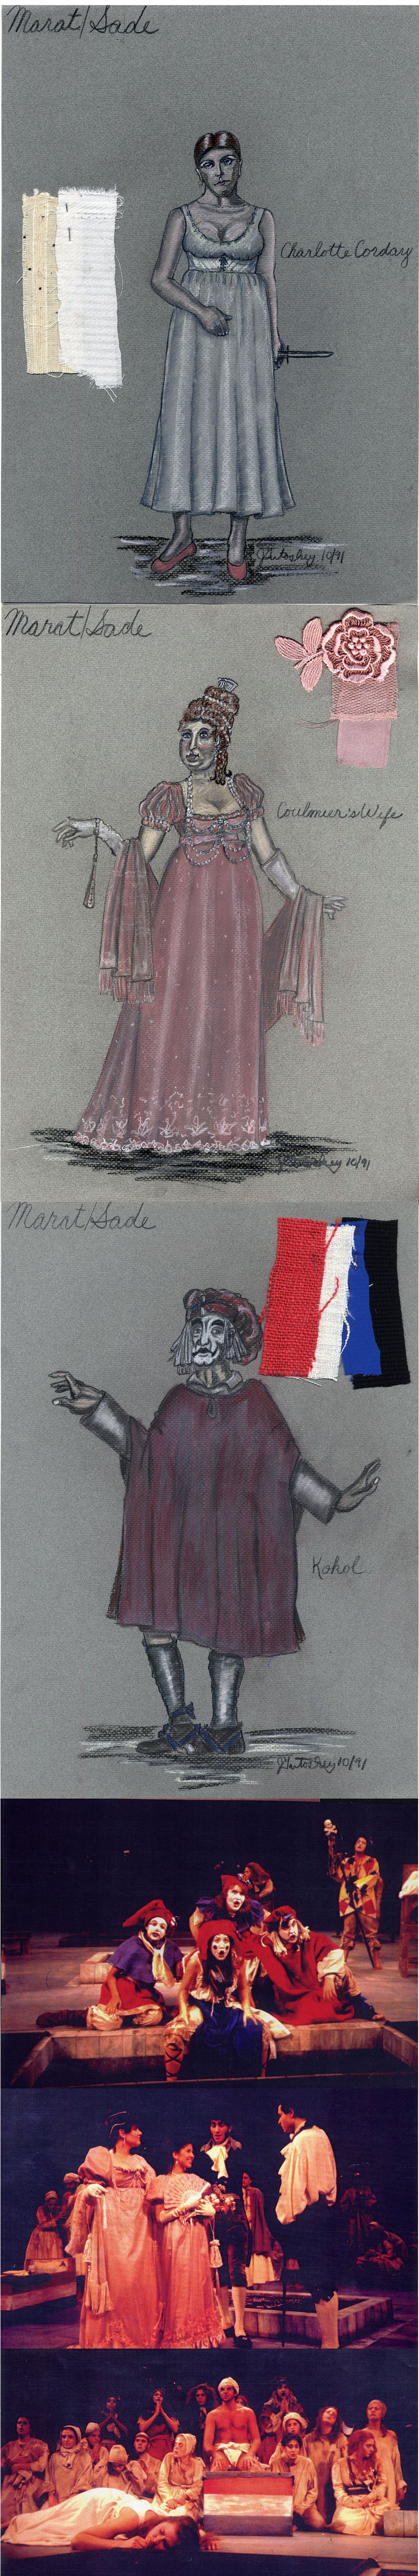 "My costume designs for ""Marat/Sade\"" at the University of Michigan\'s Power Center